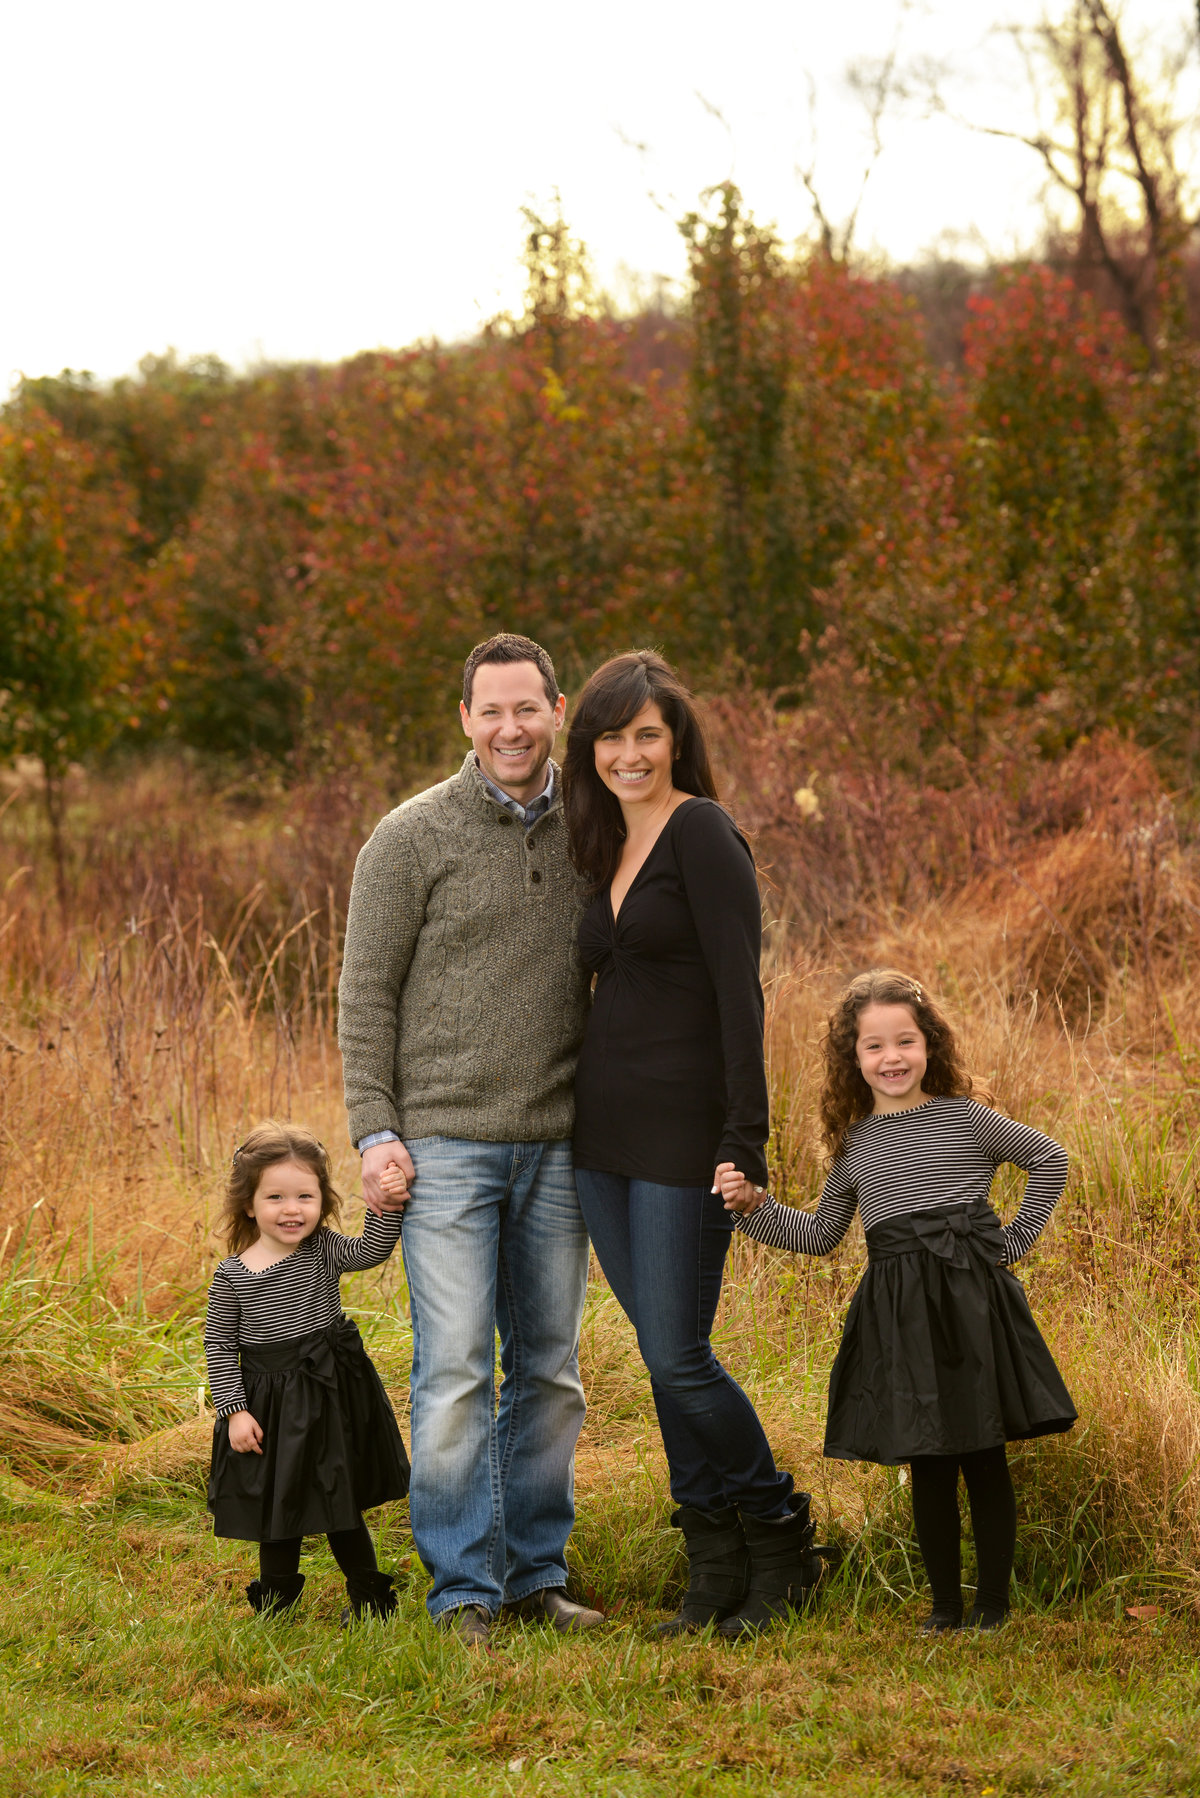 We specialize in family photography near Annapolis